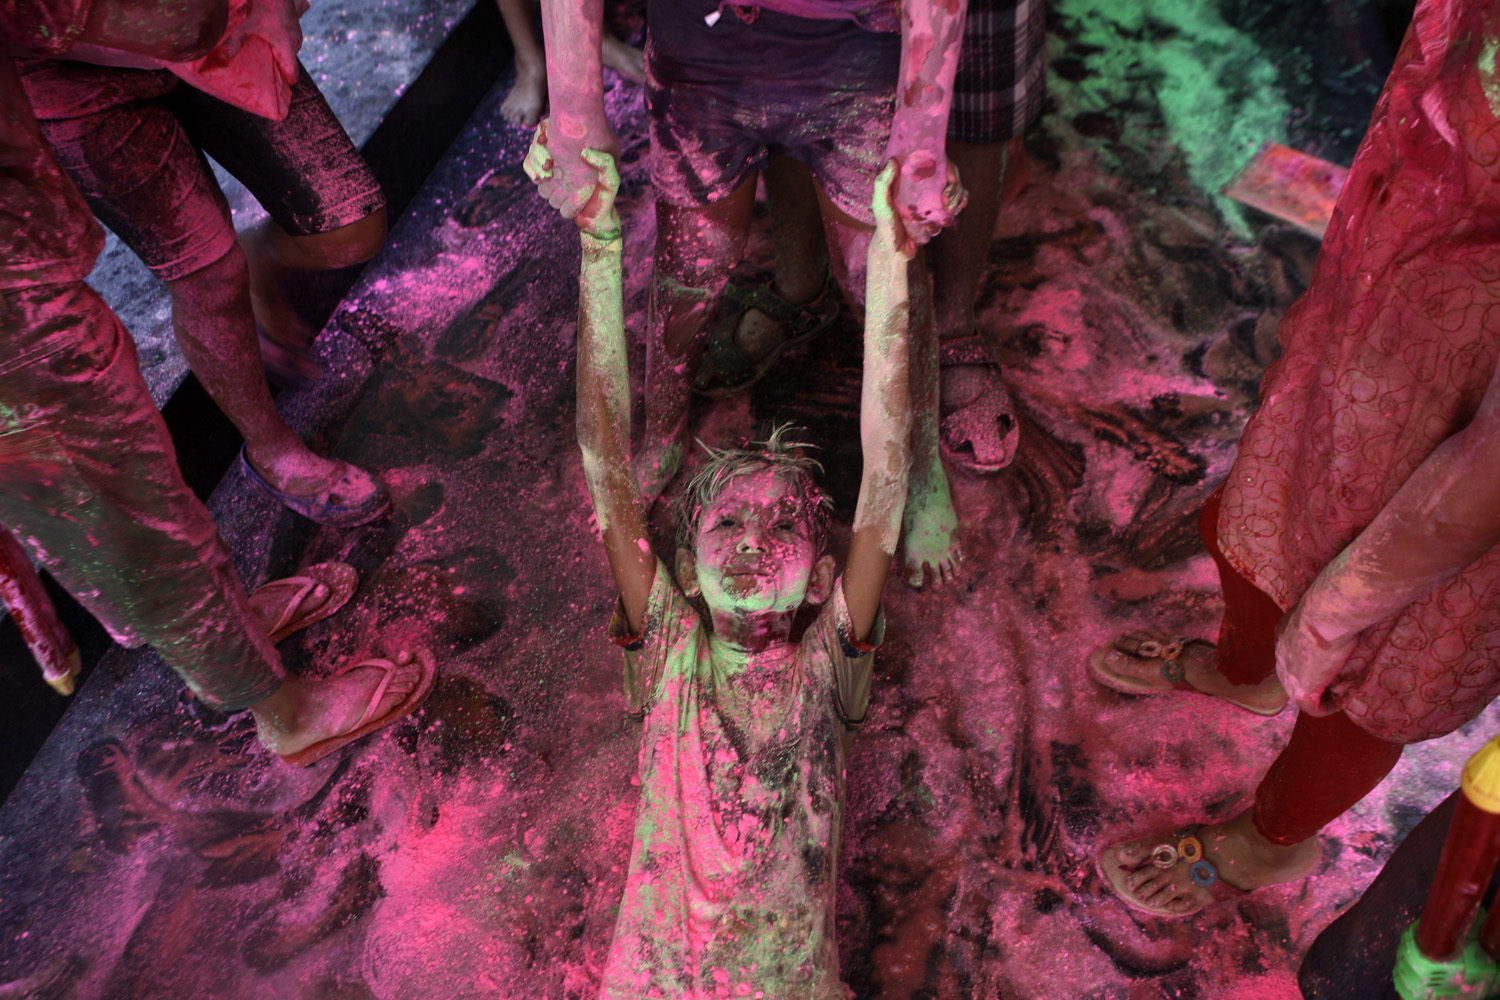 Mar. 16, 2014. An Indian boy drags another on the floor of an apartment as they play with colored powder during the Holi festival in Chennai, India.